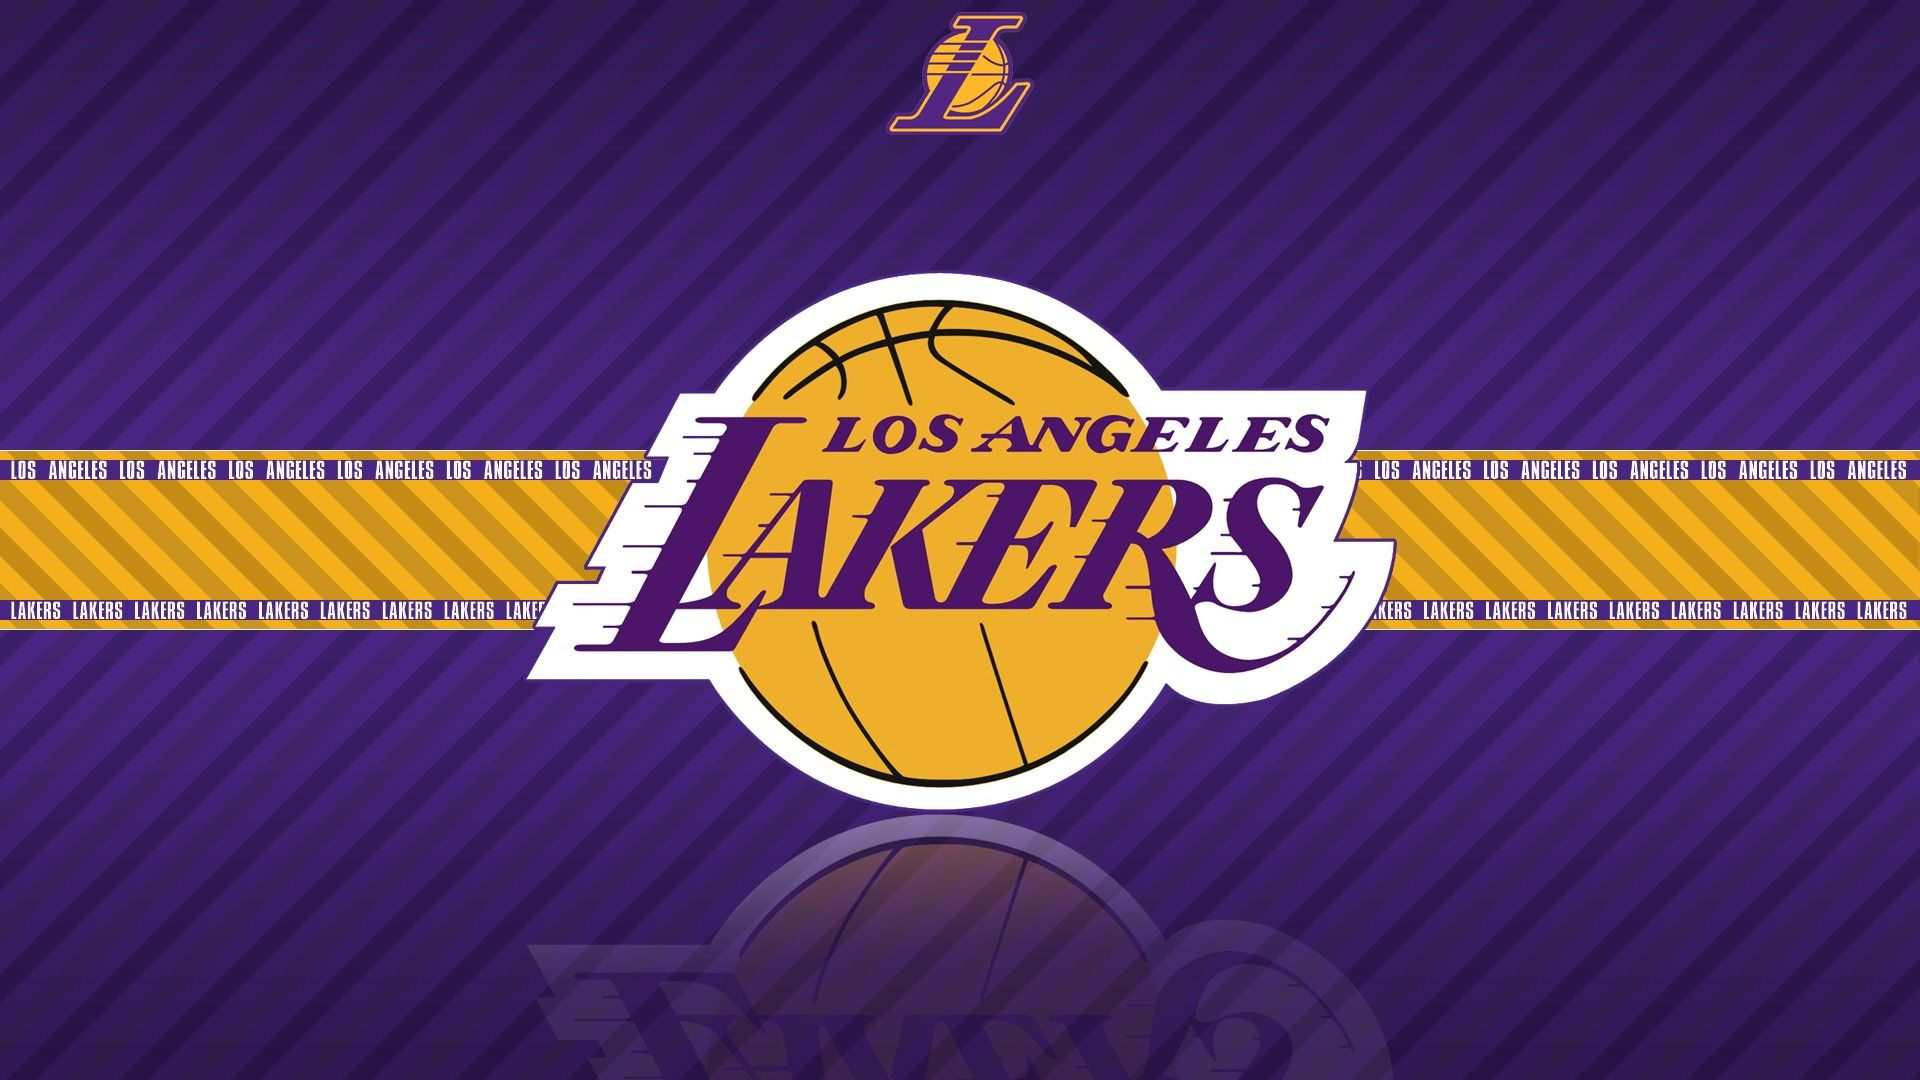 La Lakers Cool Wallpaper Lakers Wallpaper Lakers Logo Lakers Team